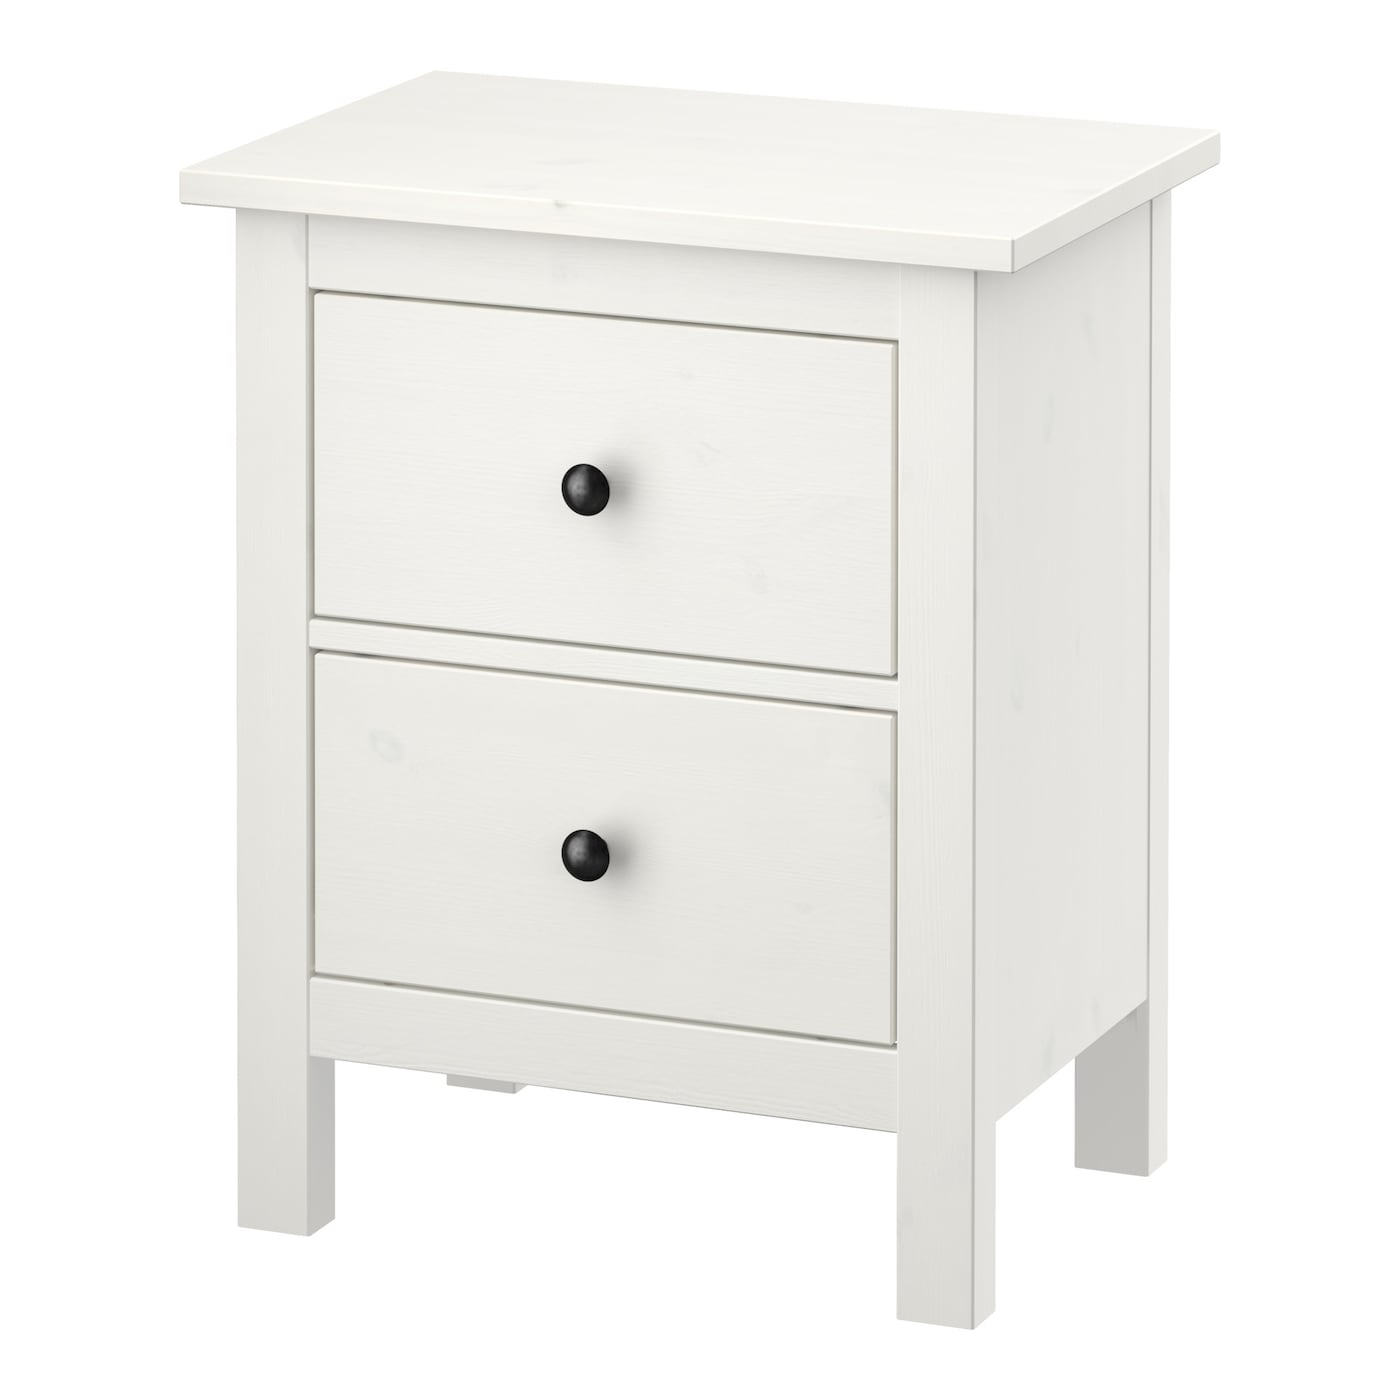 Hemnes chest of 2 drawers white stain 54x66 cm ikea - Hemnes cassettiera ikea ...